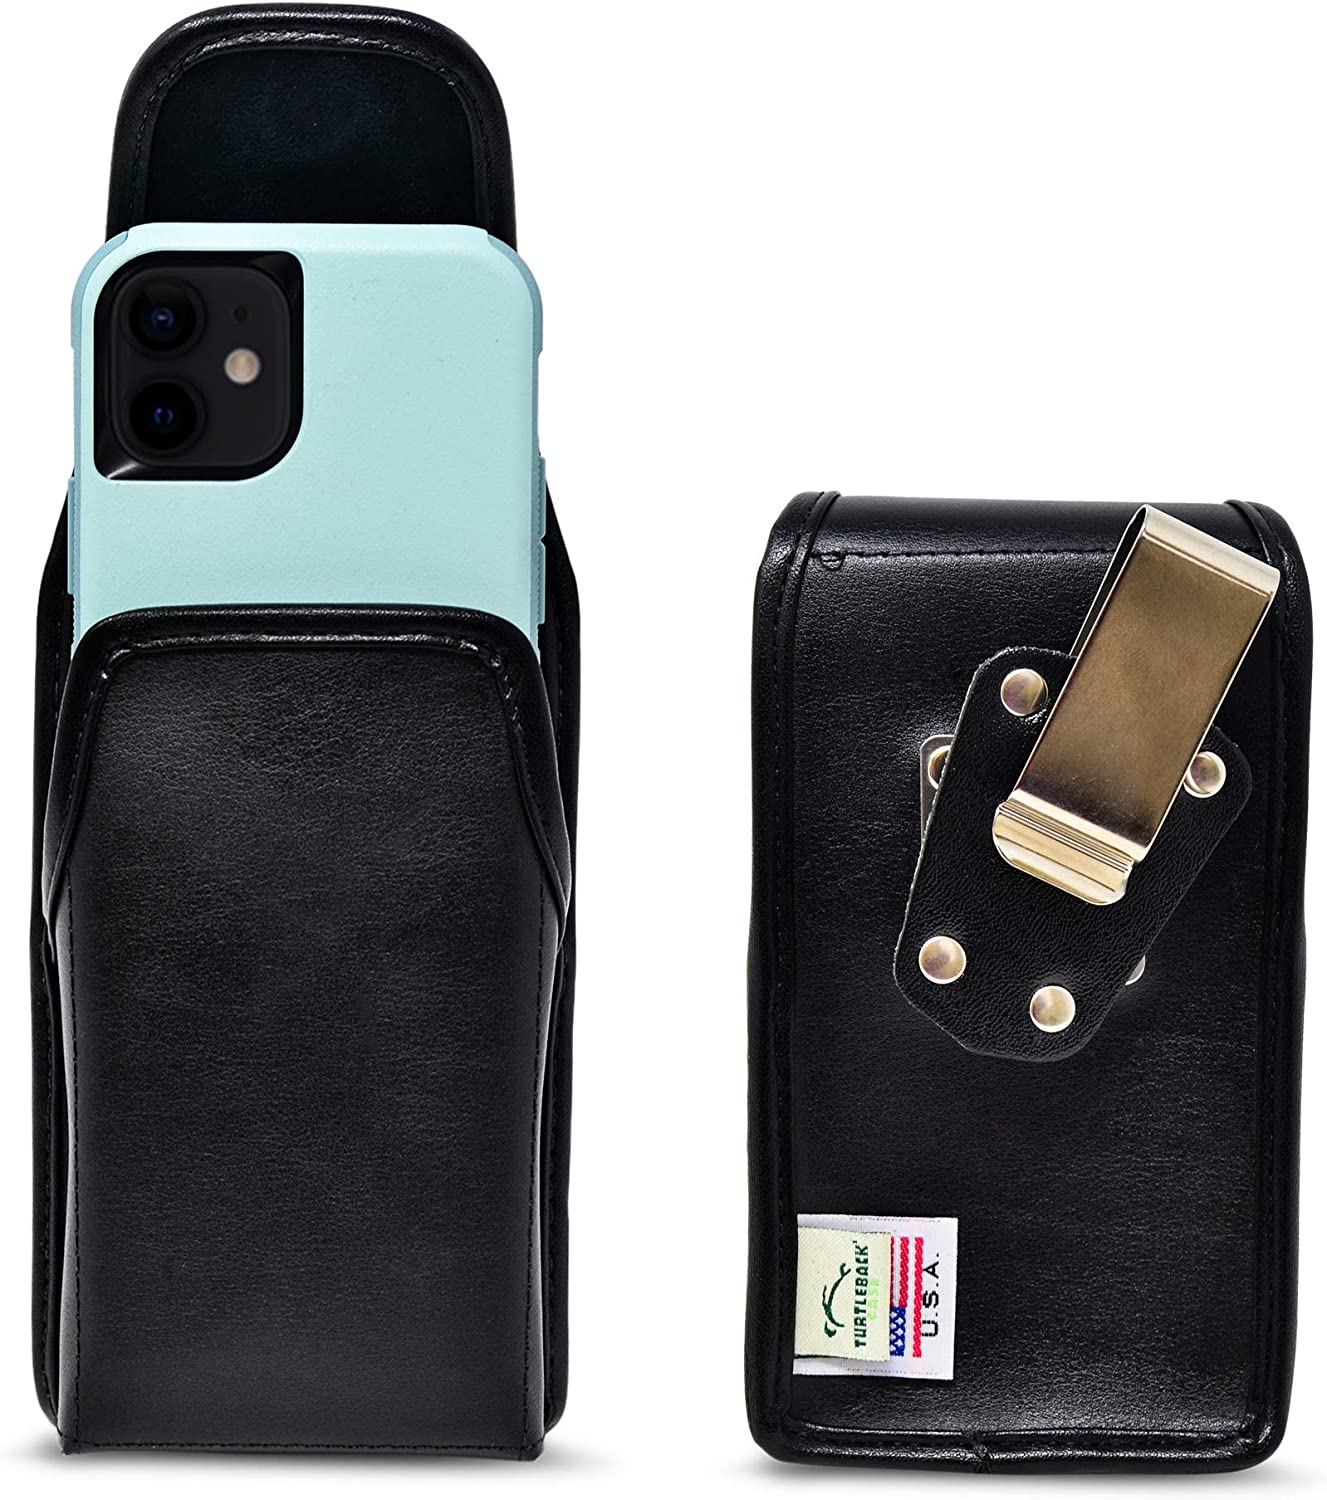 Turtleback Belt Case Designed for iPhone 12 & 13 Mini Fits with Shockproof OB COMMUTTER, Vertical Holster Black Leather Pouch with Heavy Duty Rotating Belt Clip, Made in USA